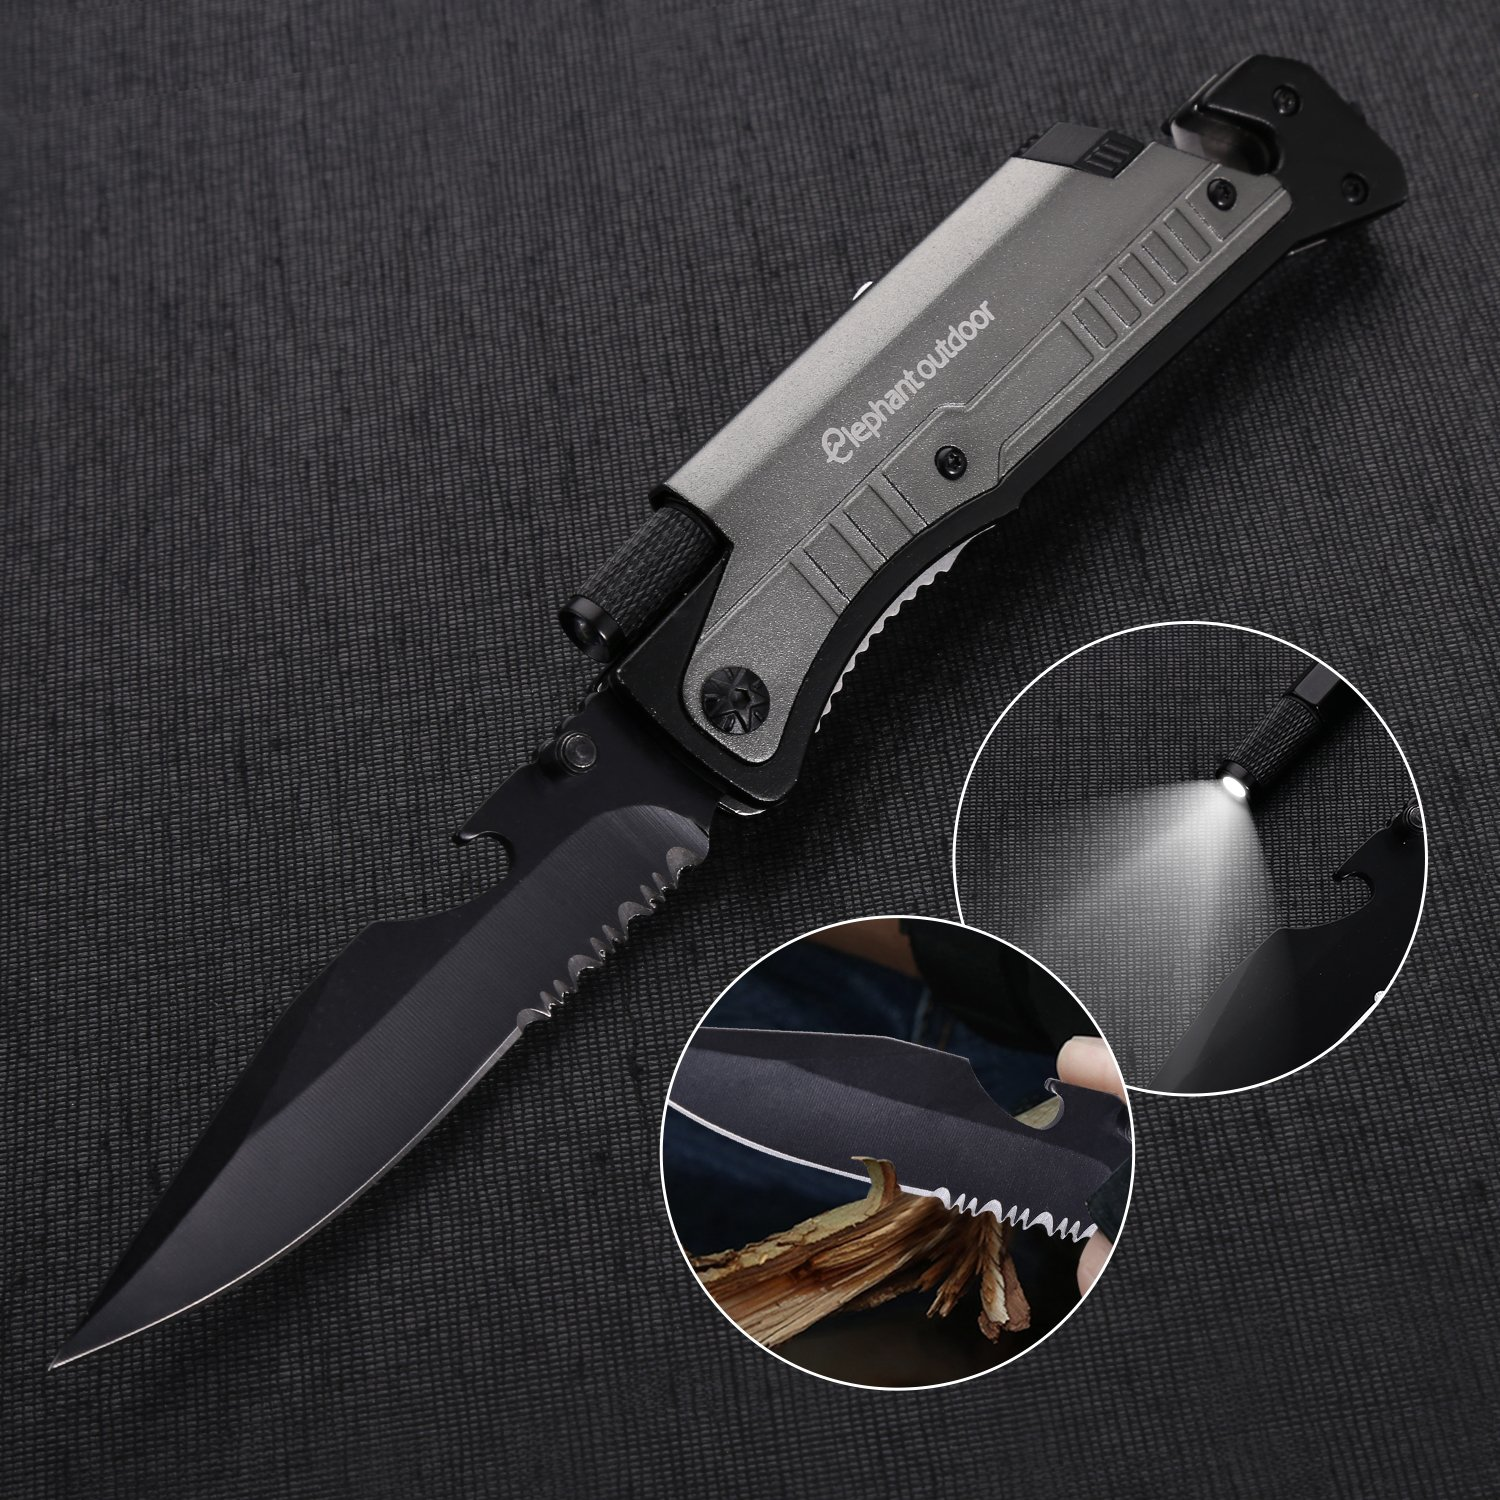 Survival Knife - Updated 7-in-1 Tactical Pocket Folding Knife with LED Flashlight, Glass Breaker, Seatbelt Cutter, Magnesium Fire Starter, Whistle and Bottle Opener, Best Stainless Steel Camping Gear by Elephant outdoor (Image #1)